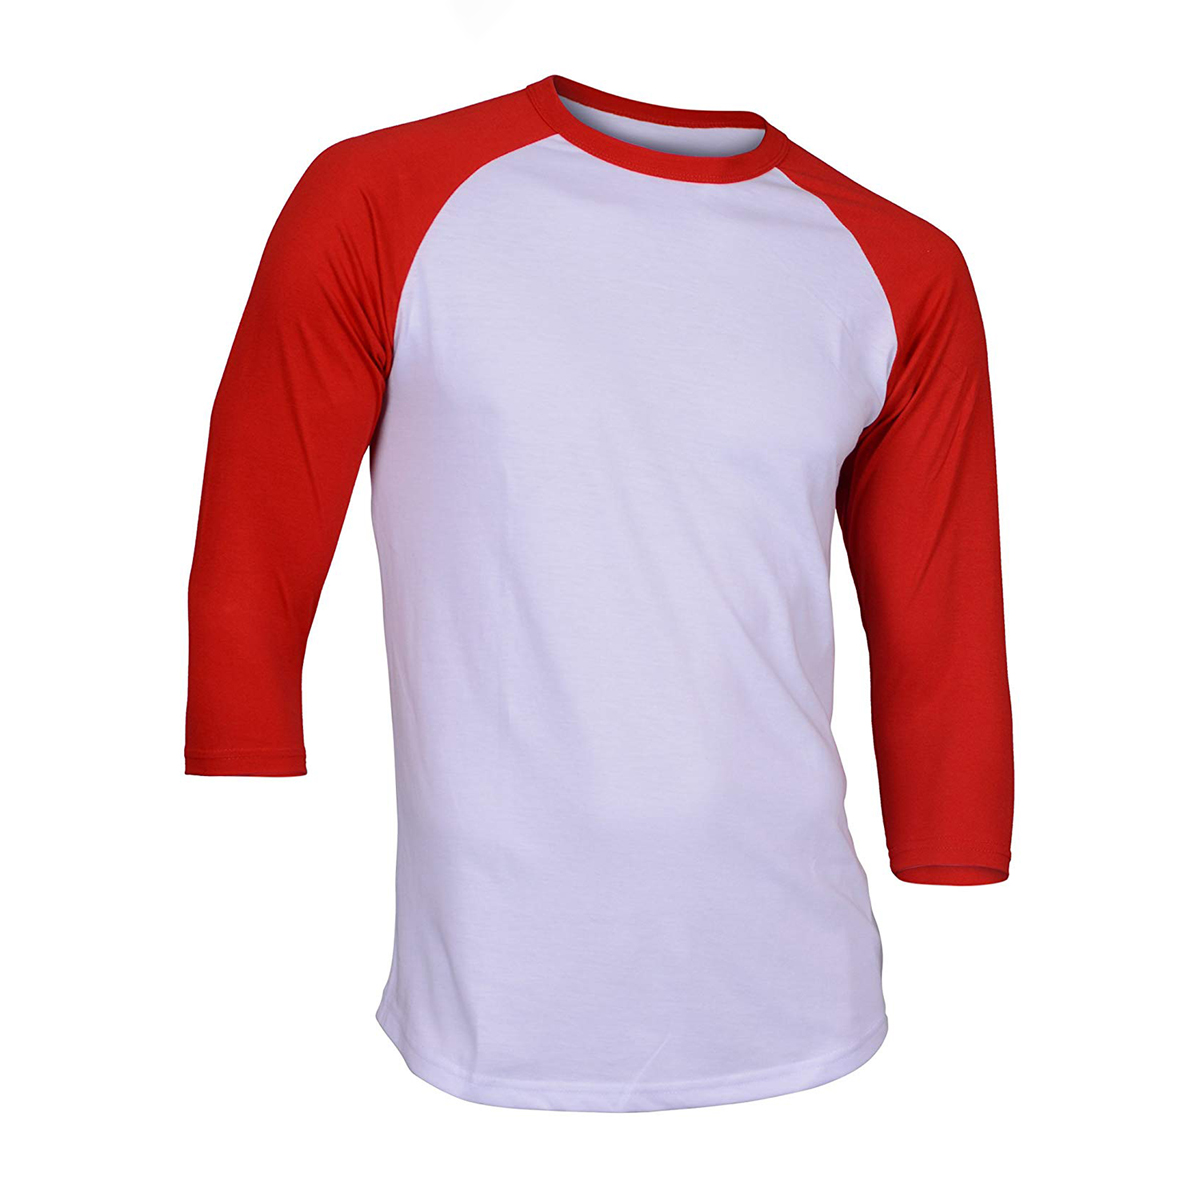 Solid Raglan Men <font><b>T</b></font>-<font><b>Shirts</b></font> 2019 Summer <font><b>Blank</b></font> 3/4 Sleeve <font><b>T</b></font> <font><b>Shirt</b></font> 100% Cotton Spring Male Tops Black <font><b>White</b></font> Blue Red Tee <font><b>Shirts</b></font> CM01 image